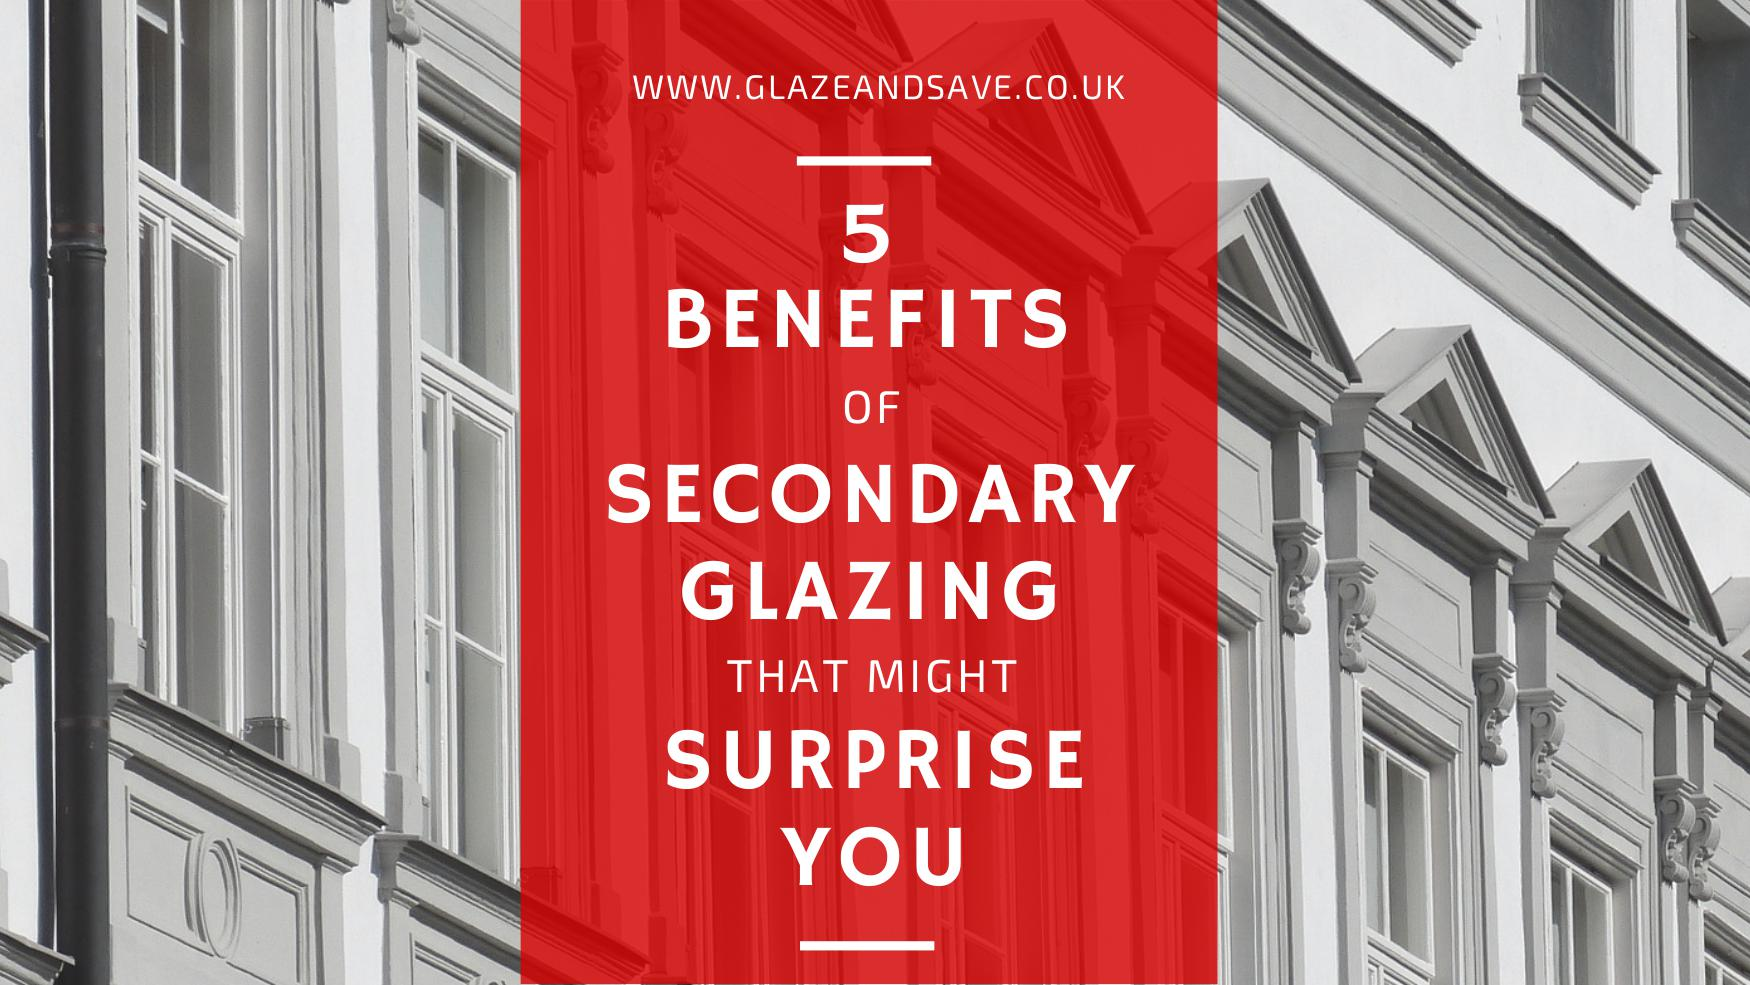 5 benefits of secondary glazing that might surprise you by Glaze & Save magnetic secondary glazing and draught proofing specialists. Increase the thermal and energy efficiency of your home, reduce noise and condensation.